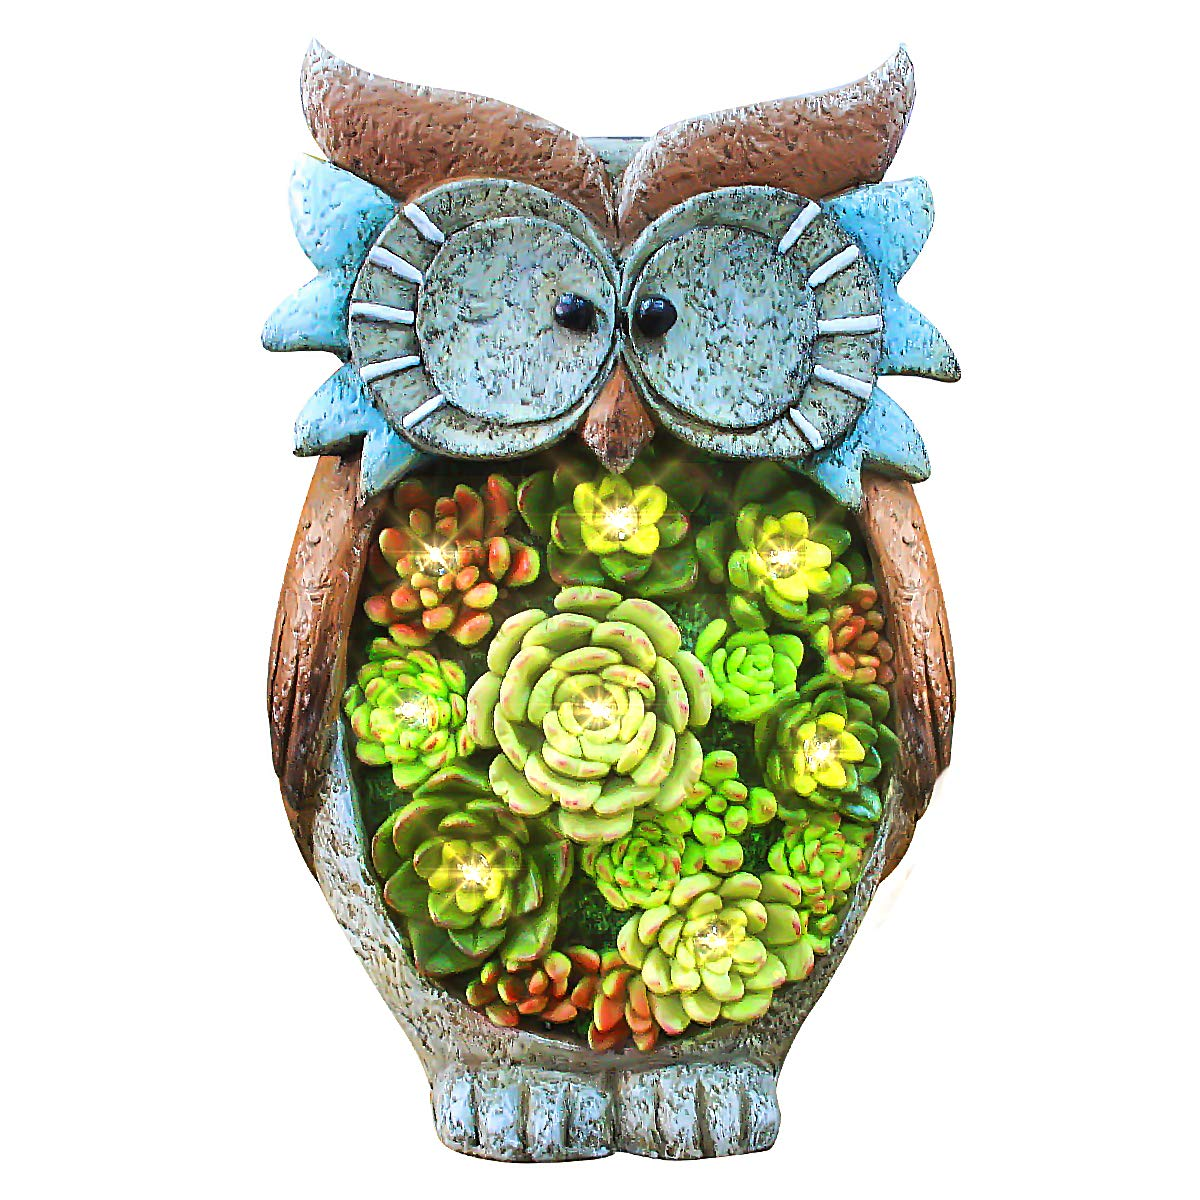 Owl Figurine Lawn Ornaments - Solar Powered LED Outdoor Lights Resin Garden Statue for Yard Decorations, 10.5'' x 6'', Gift for Mom